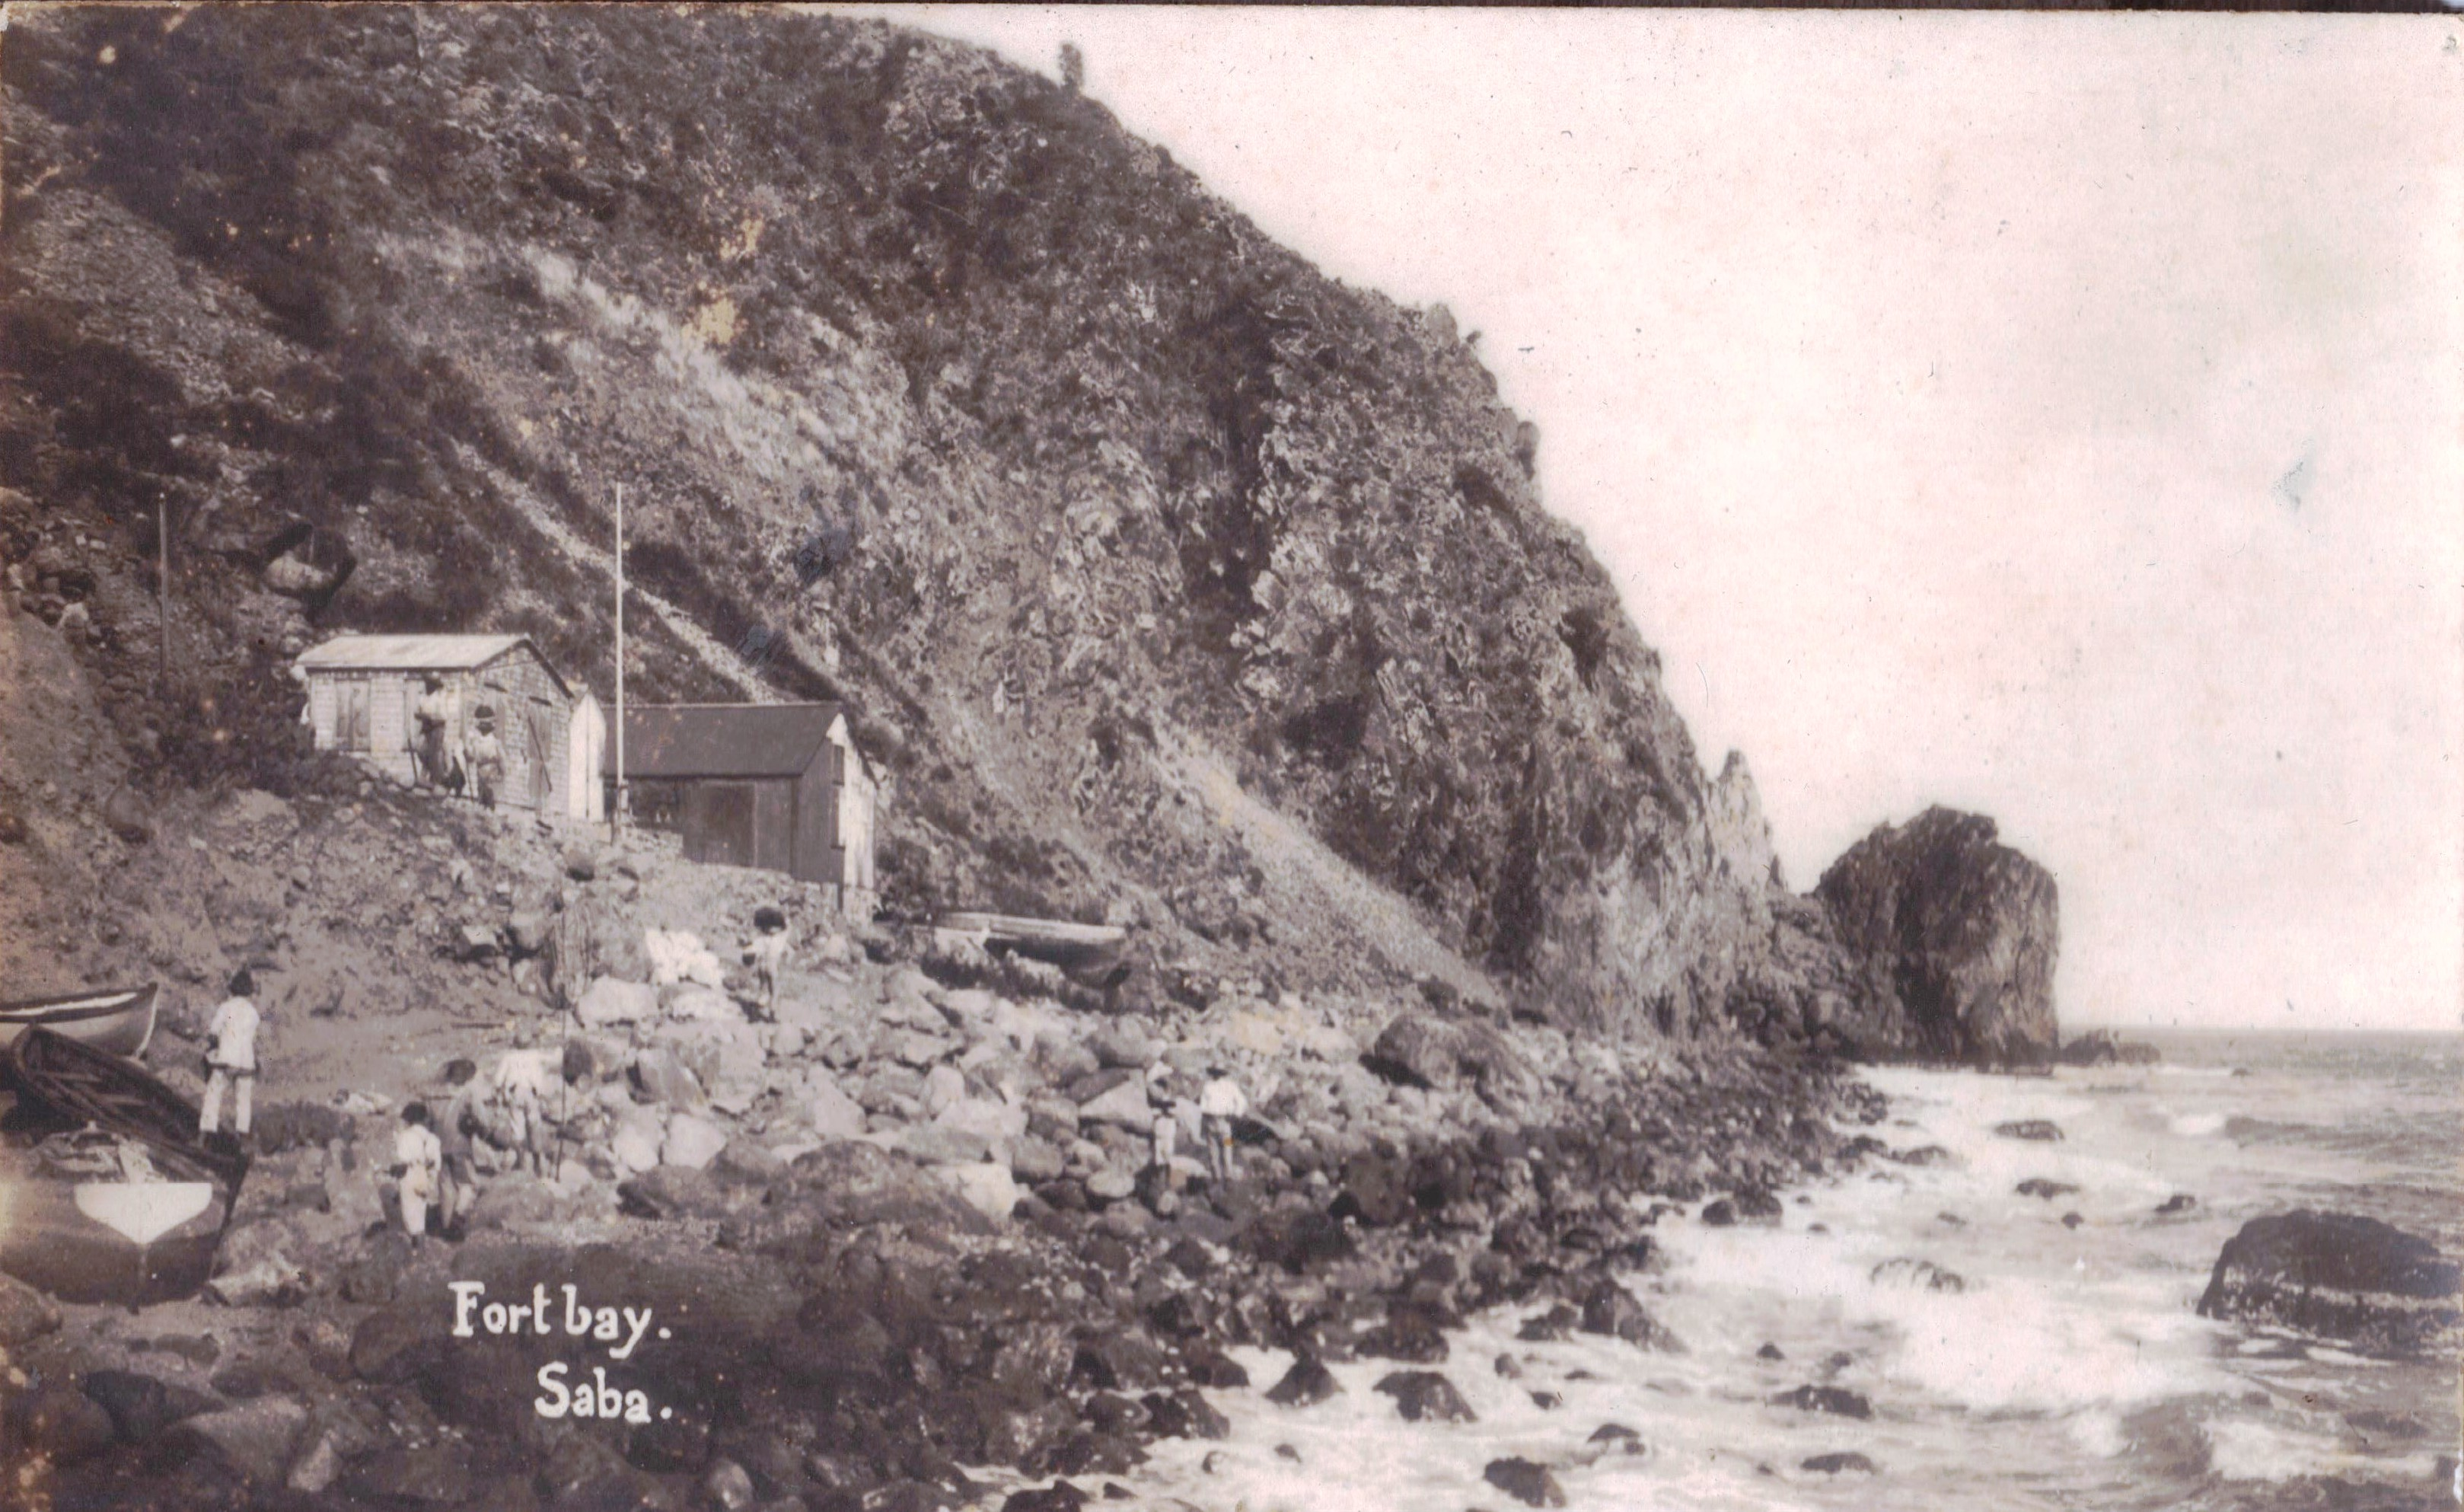 Fort Bay, Saba 1915.